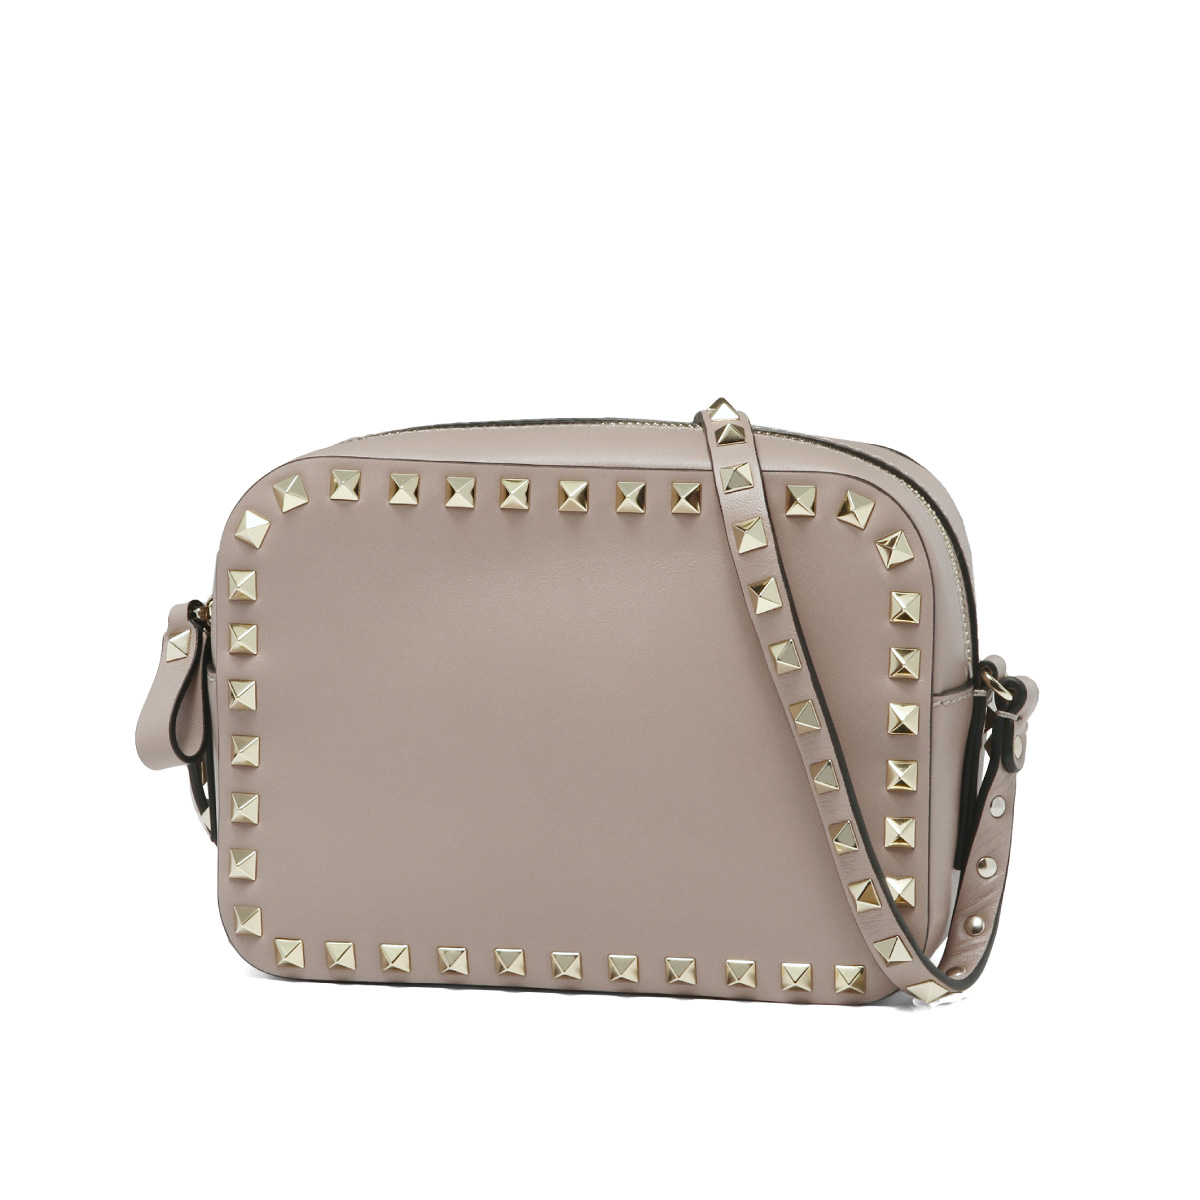 dd1a403a6f1eab Valentino VALENTINO bag lady PW2B0809BOL P45 shoulder bag ROCKSTUD lock  stud bolt POUDRE is beige ...